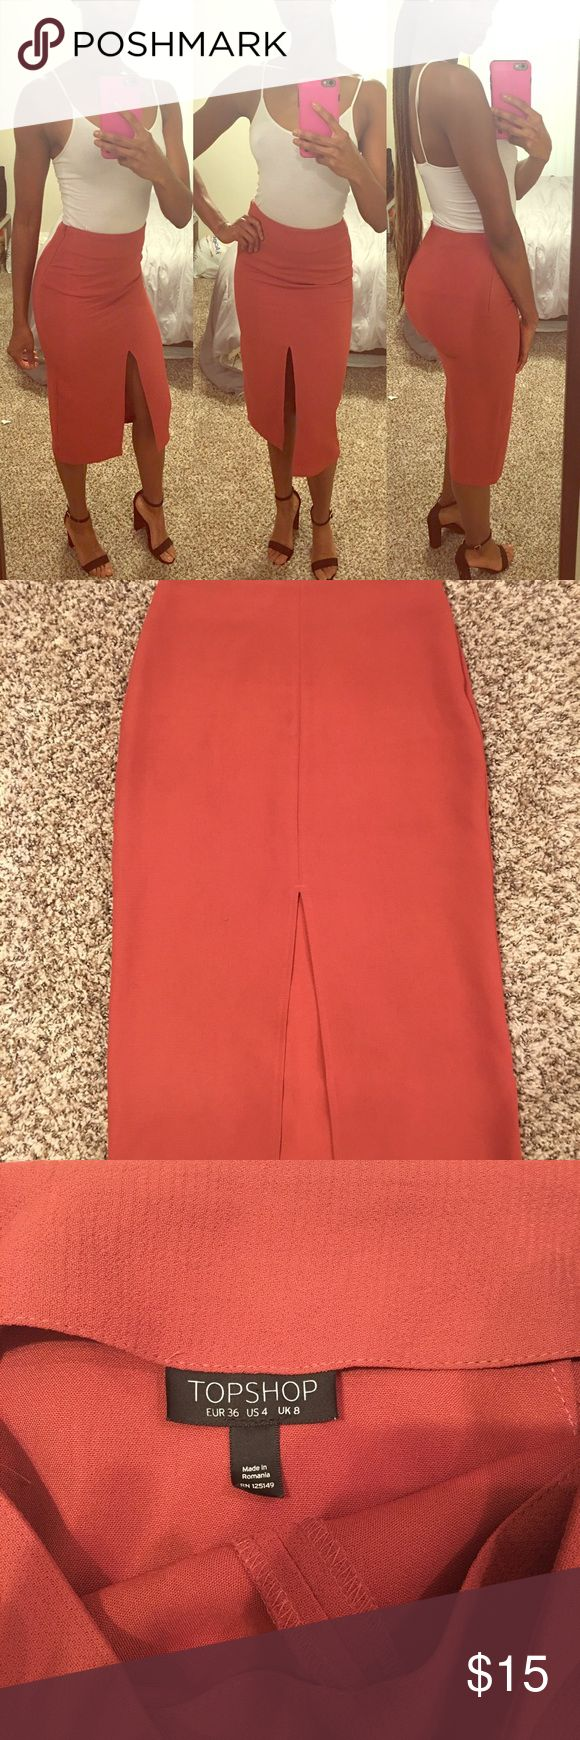 Burnt Orange Pencil Skirt Beautiful and elegant pencil skirt with front slit. This  piece is simple yet chic and can be worn for any occasion. Topshop Skirts Pencil